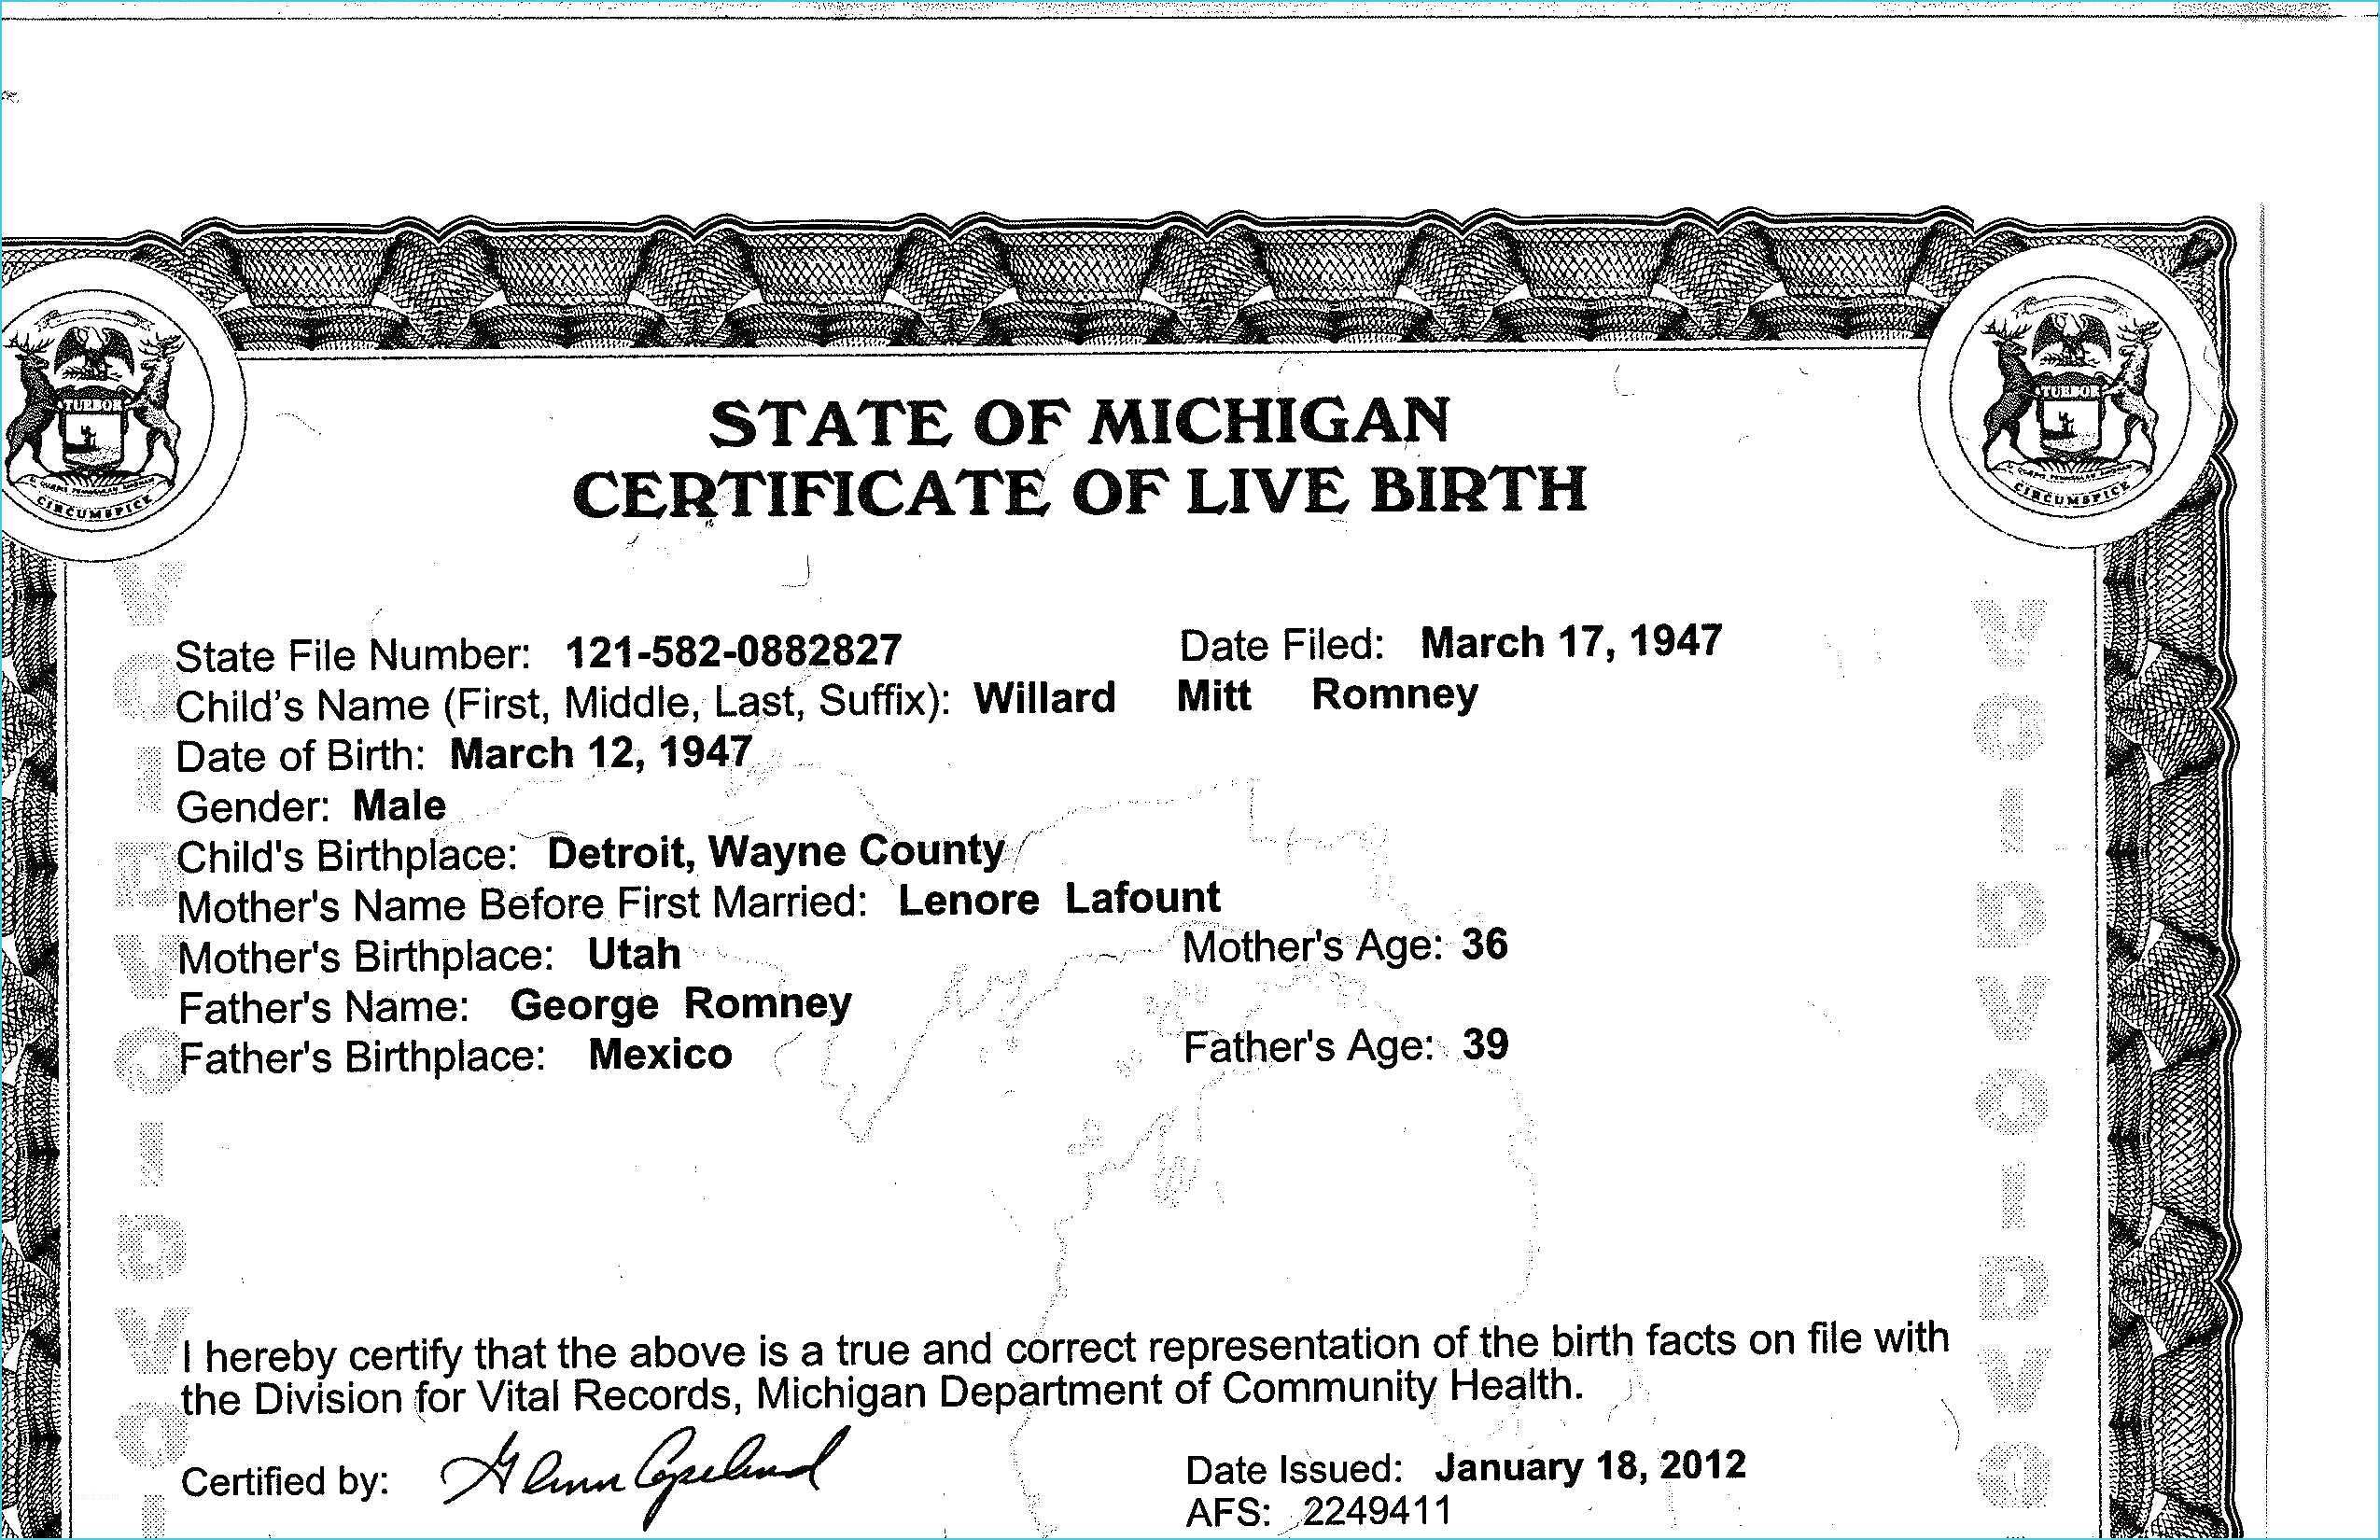 Mississippi Birth Certificate Correction Form